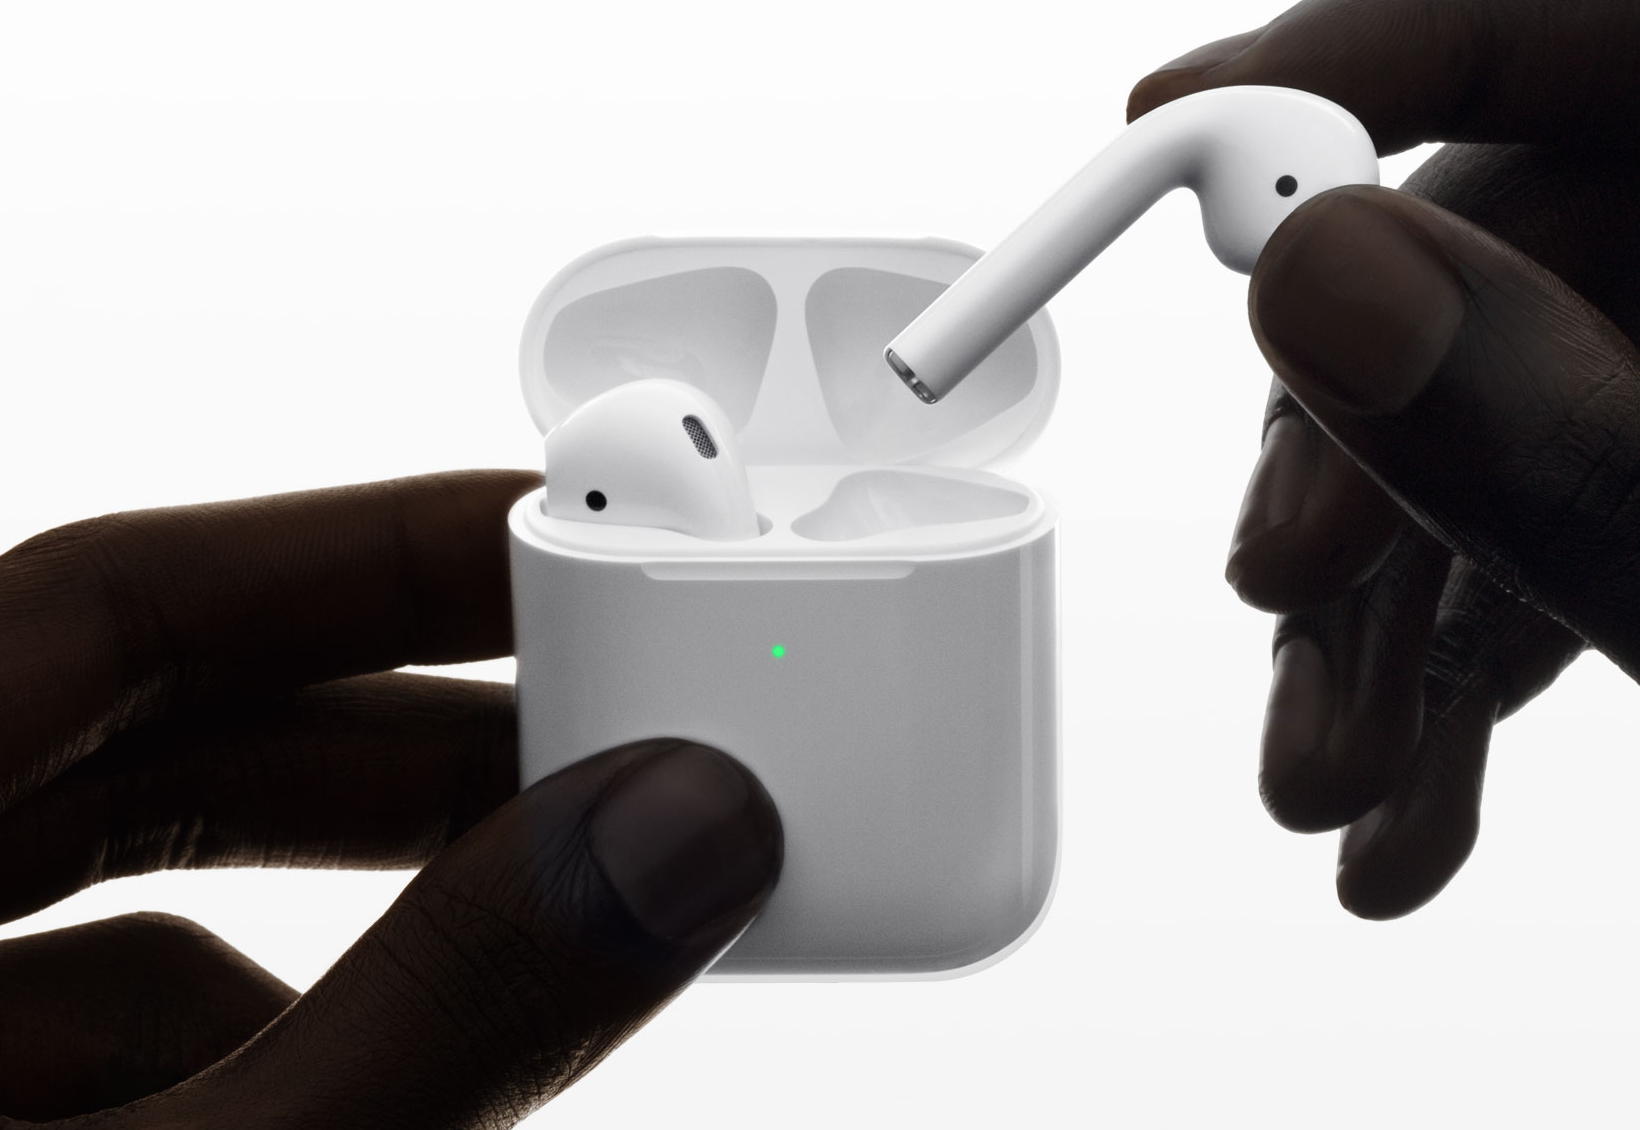 Apple annuncia le AirPods 2 con chip H1, Siri always-on e ricarica wireless 1